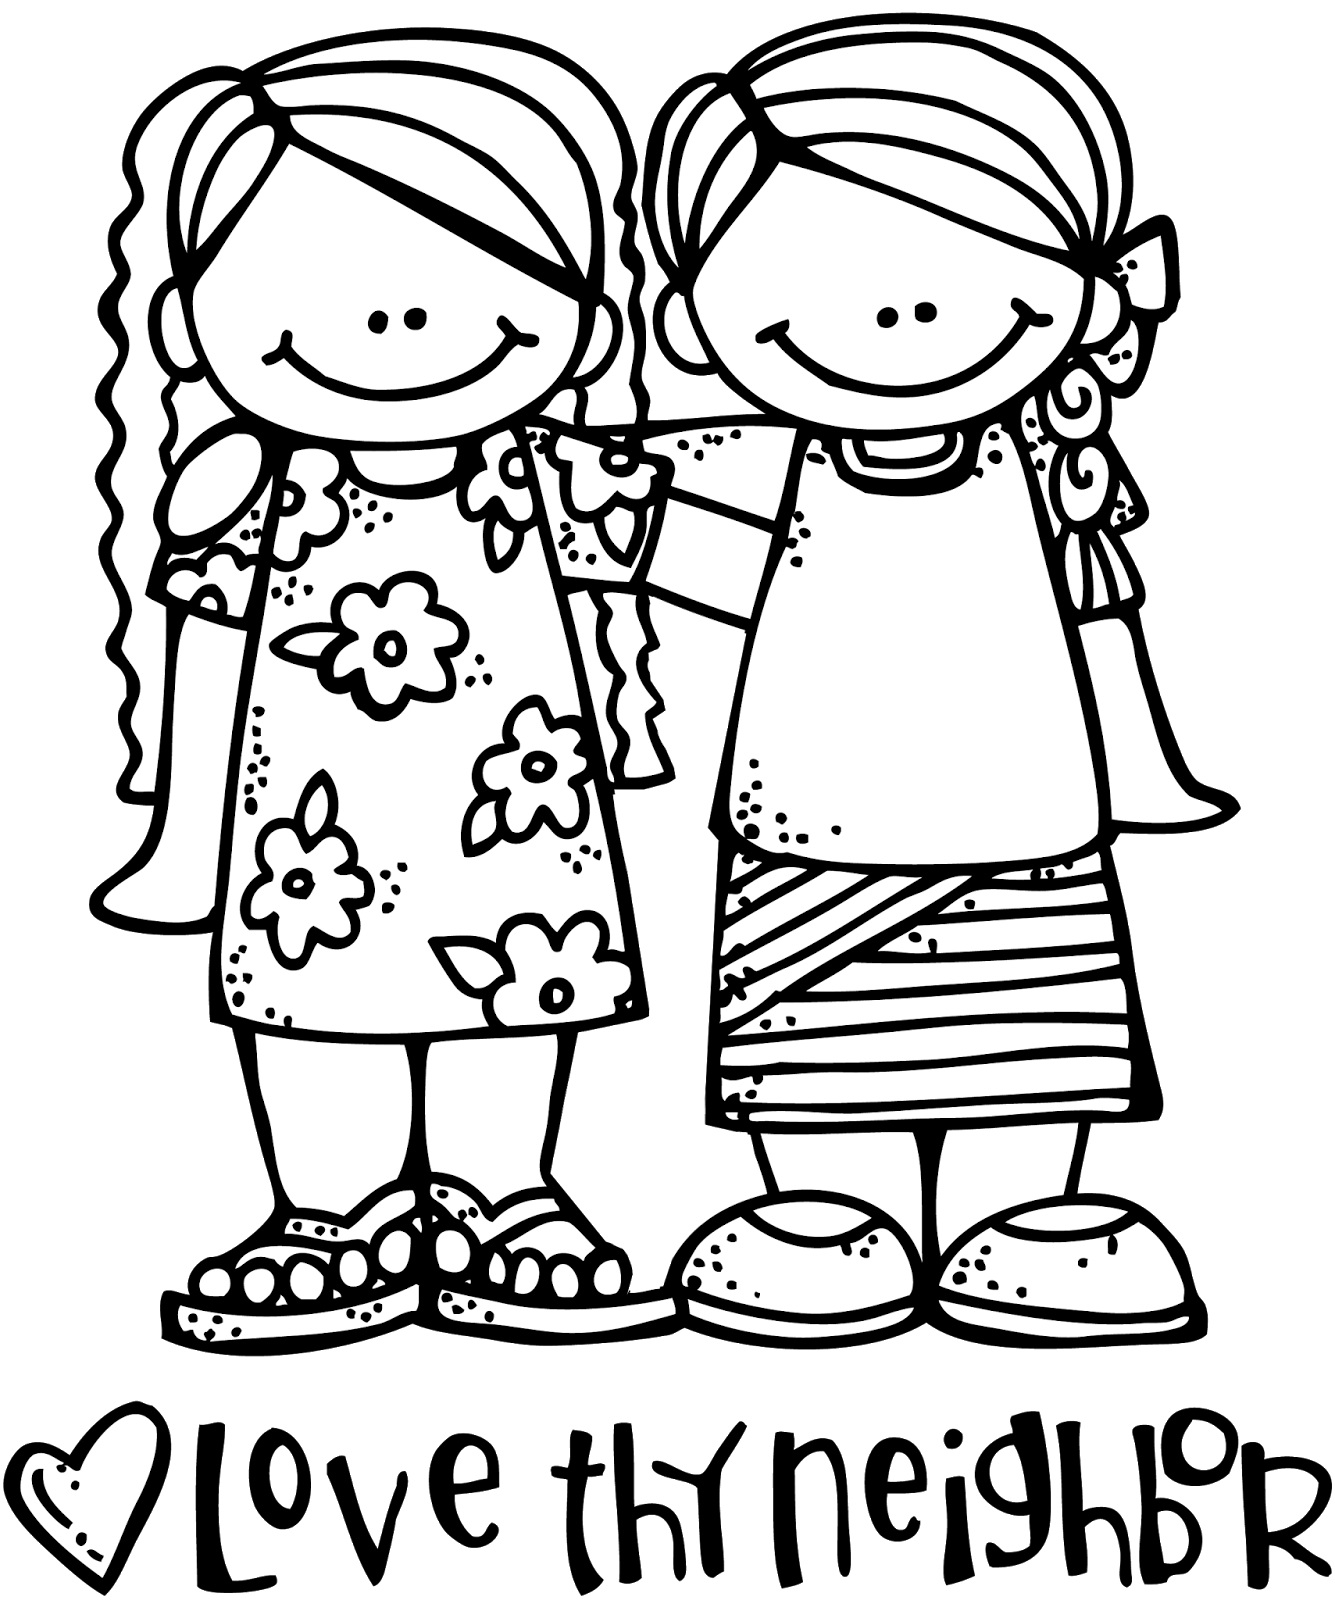 Forgiveness clipart love thy neighbor. Your enemies coloring page